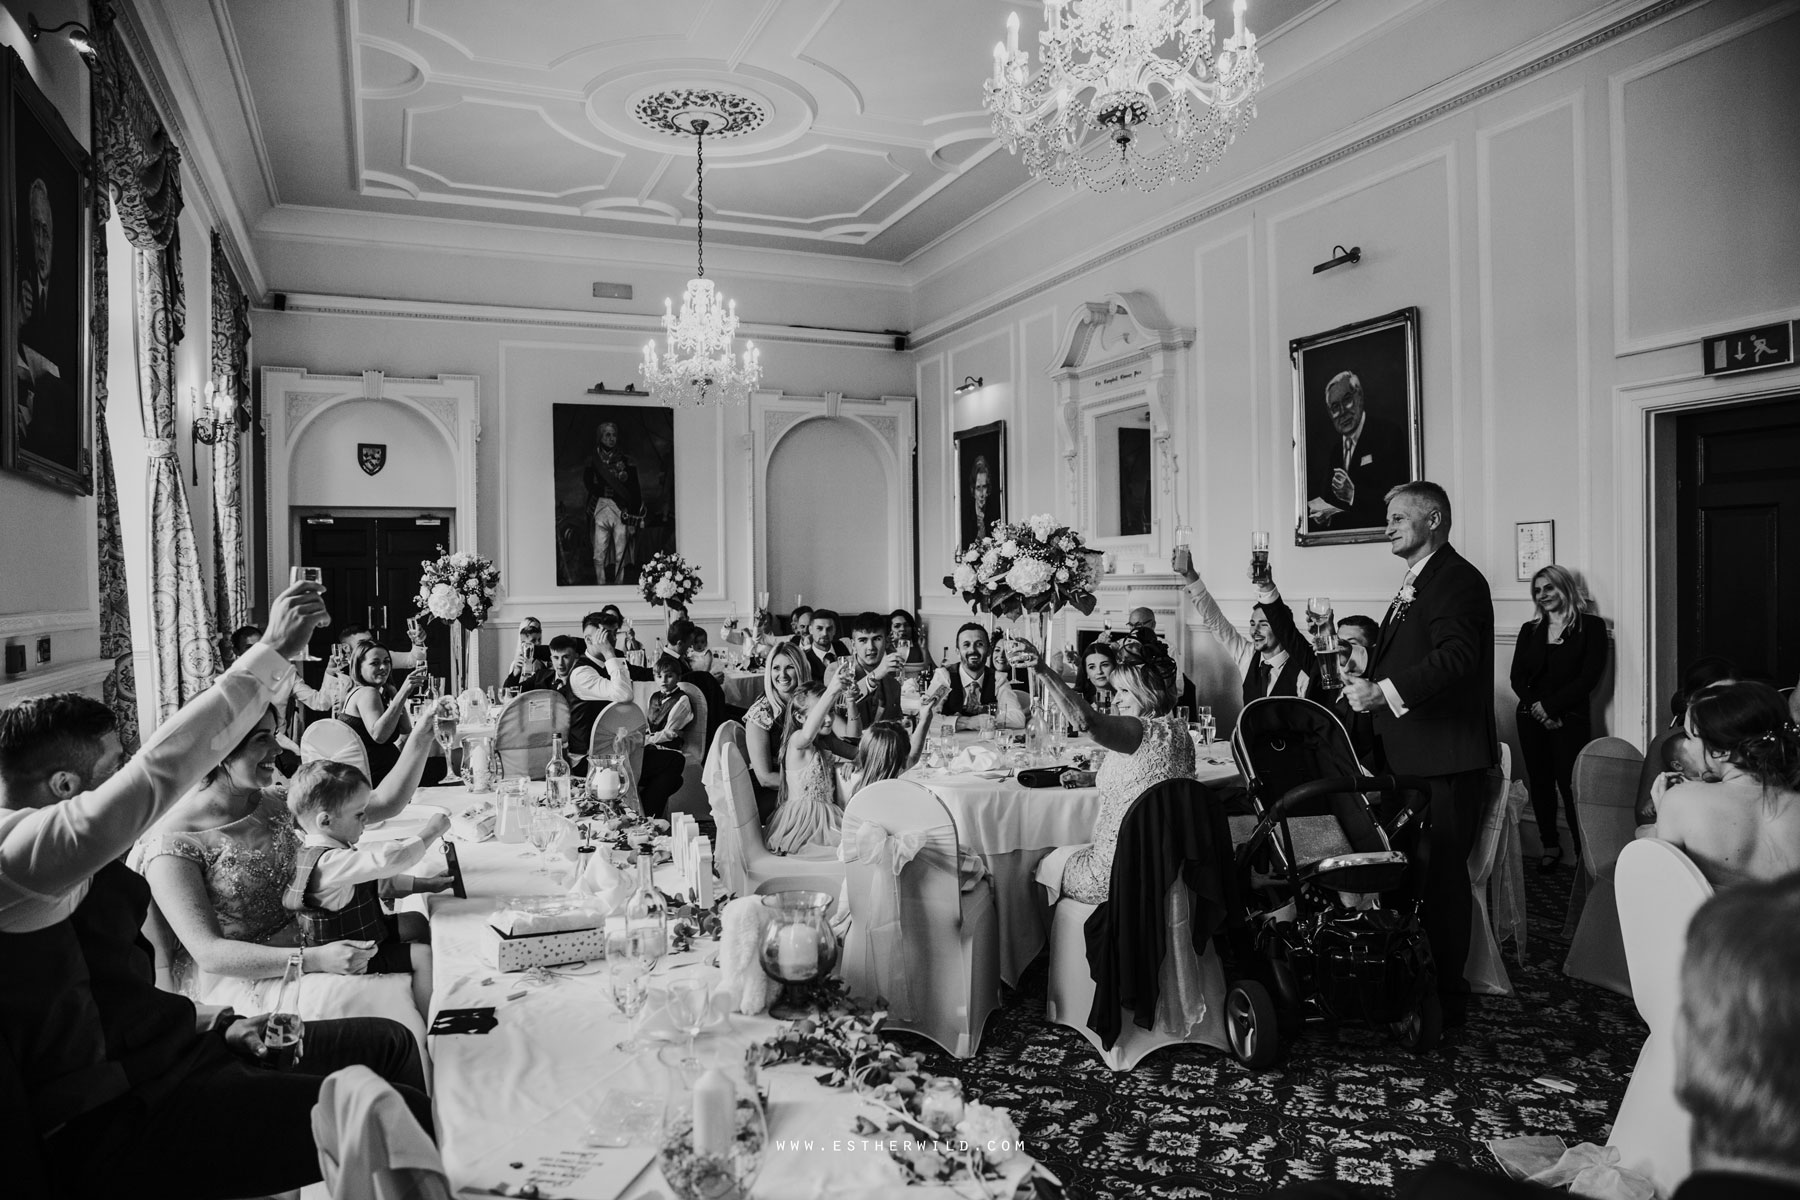 Lynford_Hall_Wedding_Thetford_Mundford_Esther_Wild_Photographer_IMG_2922-2.jpg